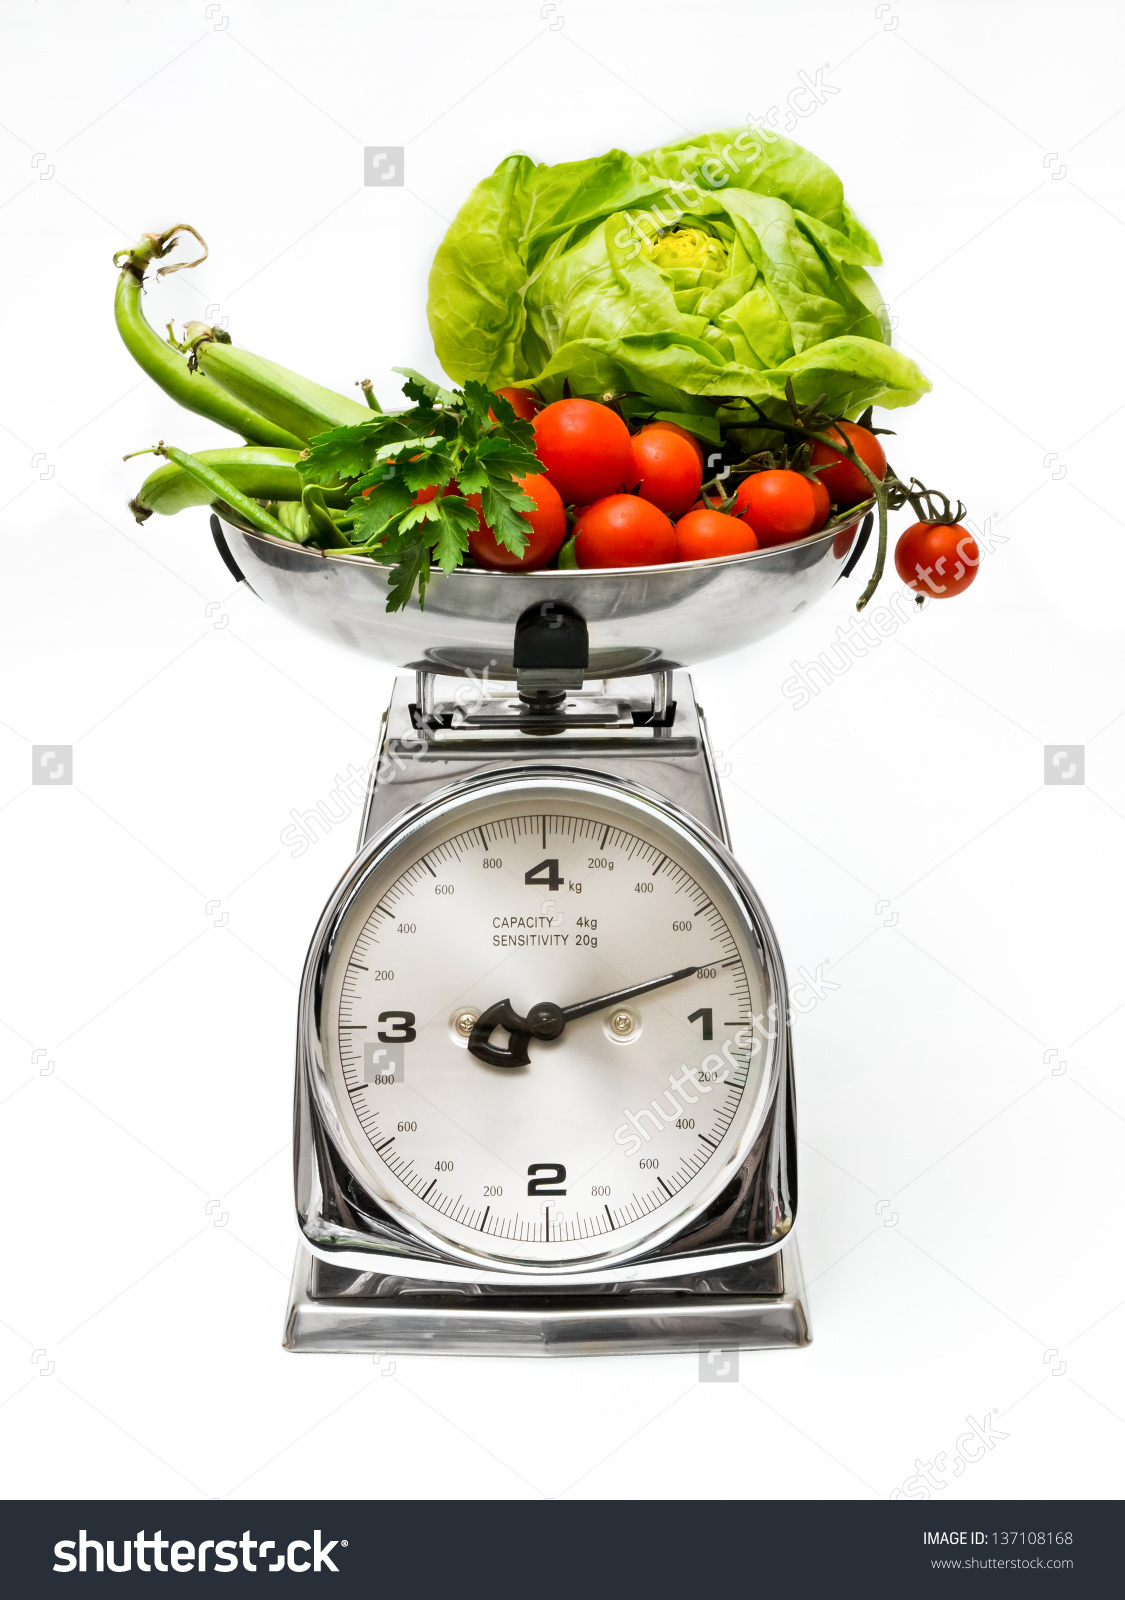 Vegetables On Weight Scale Stock Photo 137108168.